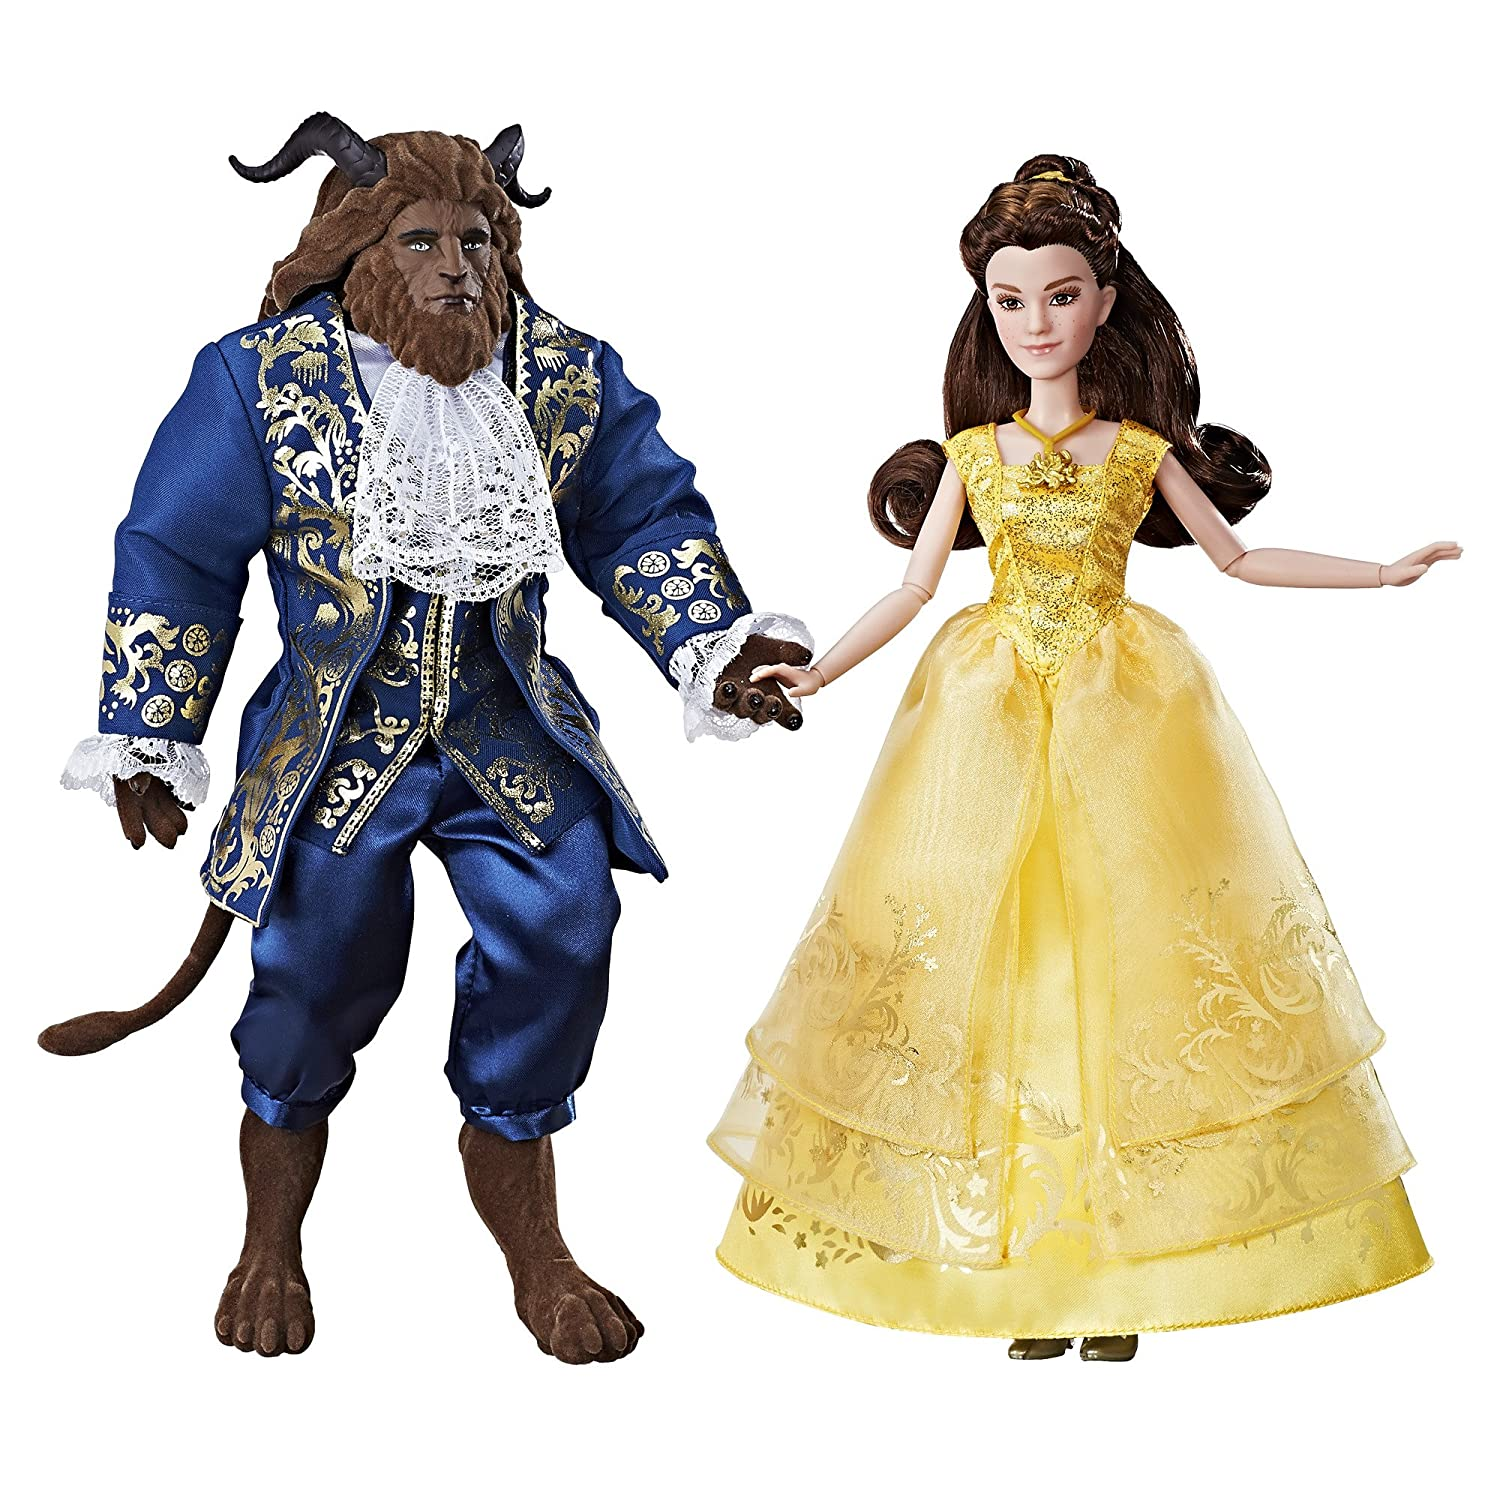 Amazoncom Disney Princess Dpr Batb Belle And Beast 2 Pack Fd Doll